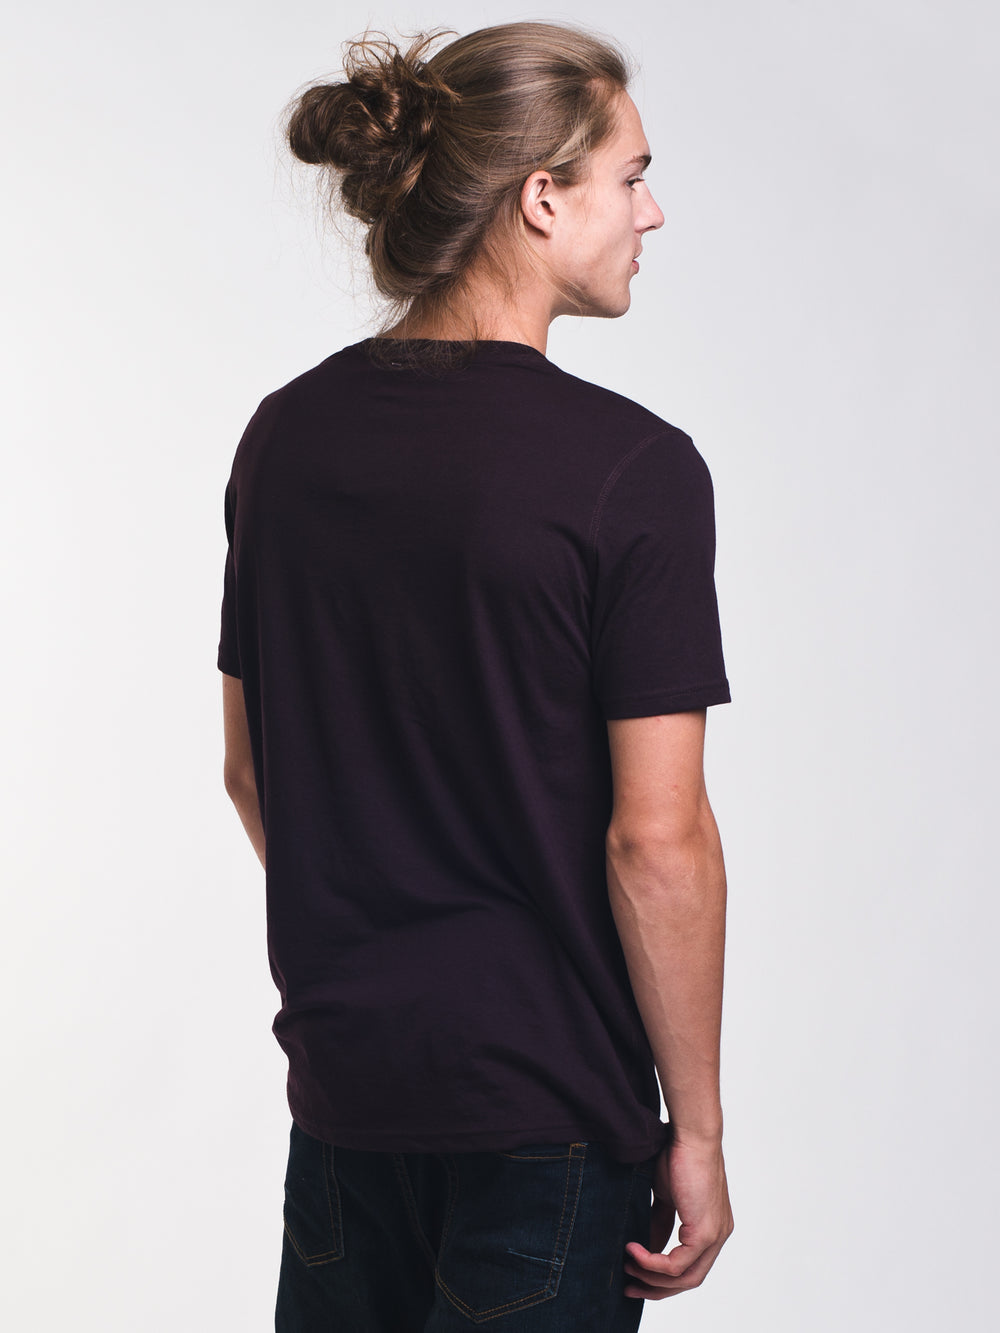 MENS VICTOR VNECK T - PORT - CLEARANCE